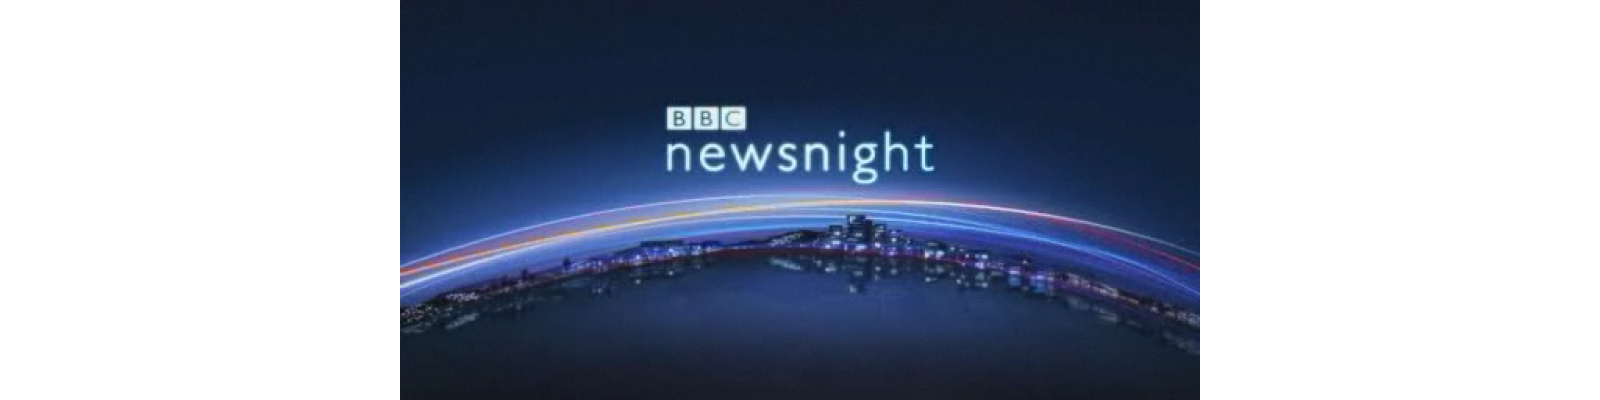 BBC and Other Media Feature EWI Russia-U.S. Report on Cyber Conflict